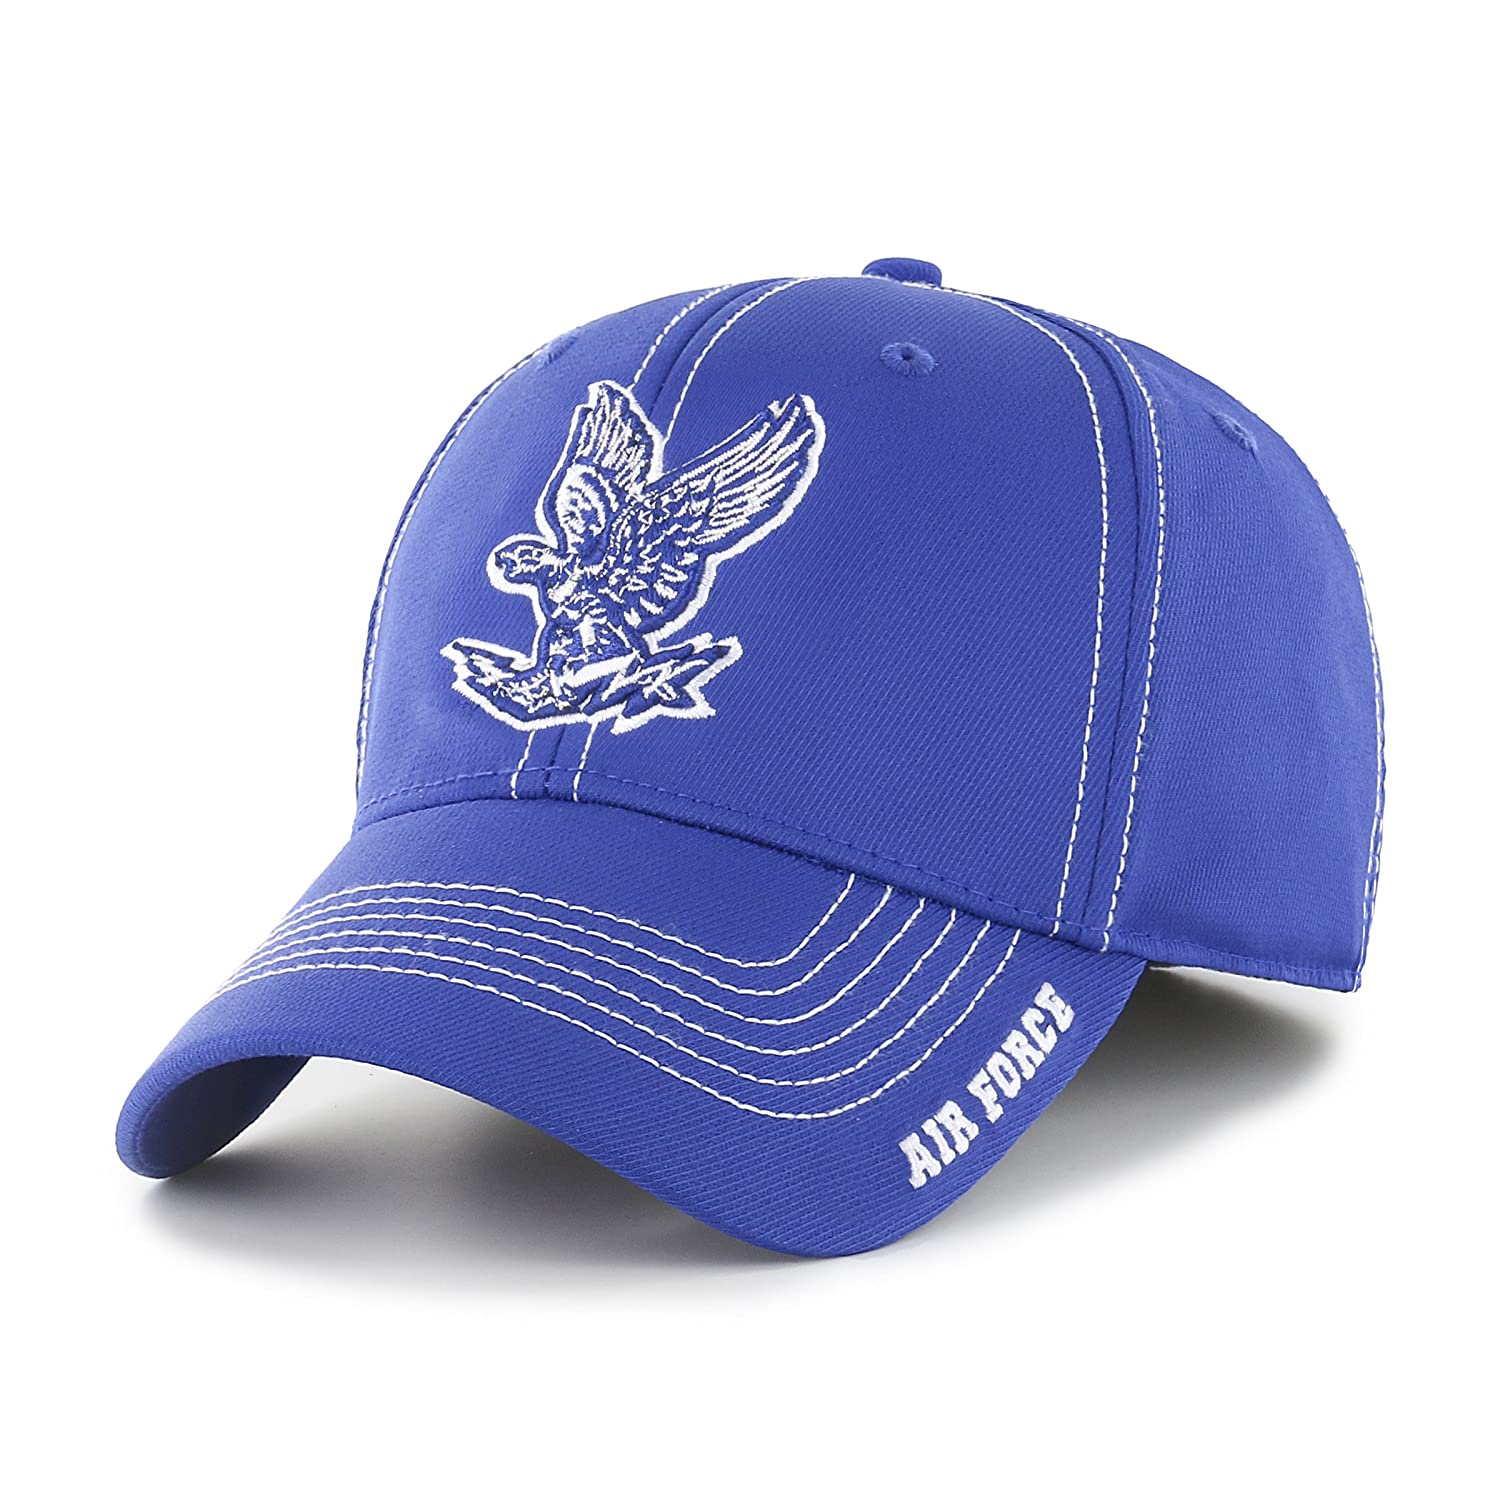 b033e04ac81 Amazon.com   OTS NCAA Adult Men s NCAA Start Line Center Stretch Fit Hat    Sports   Outdoors